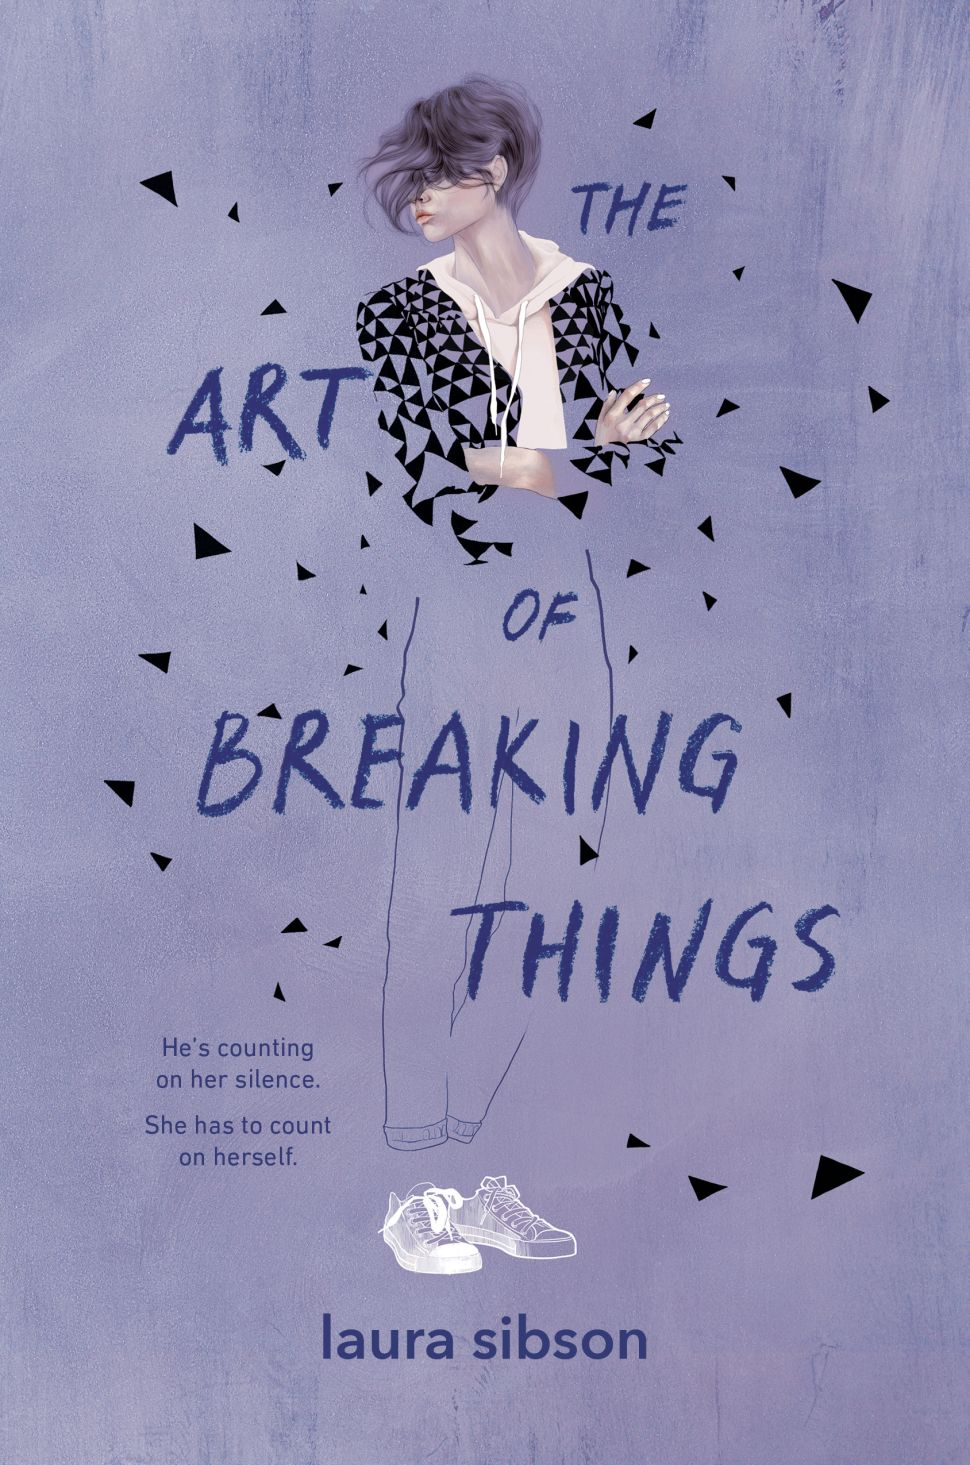 YA Novel 'The Art of Breaking Things' Gives Teens the Tools They Need for the #MeToo Era